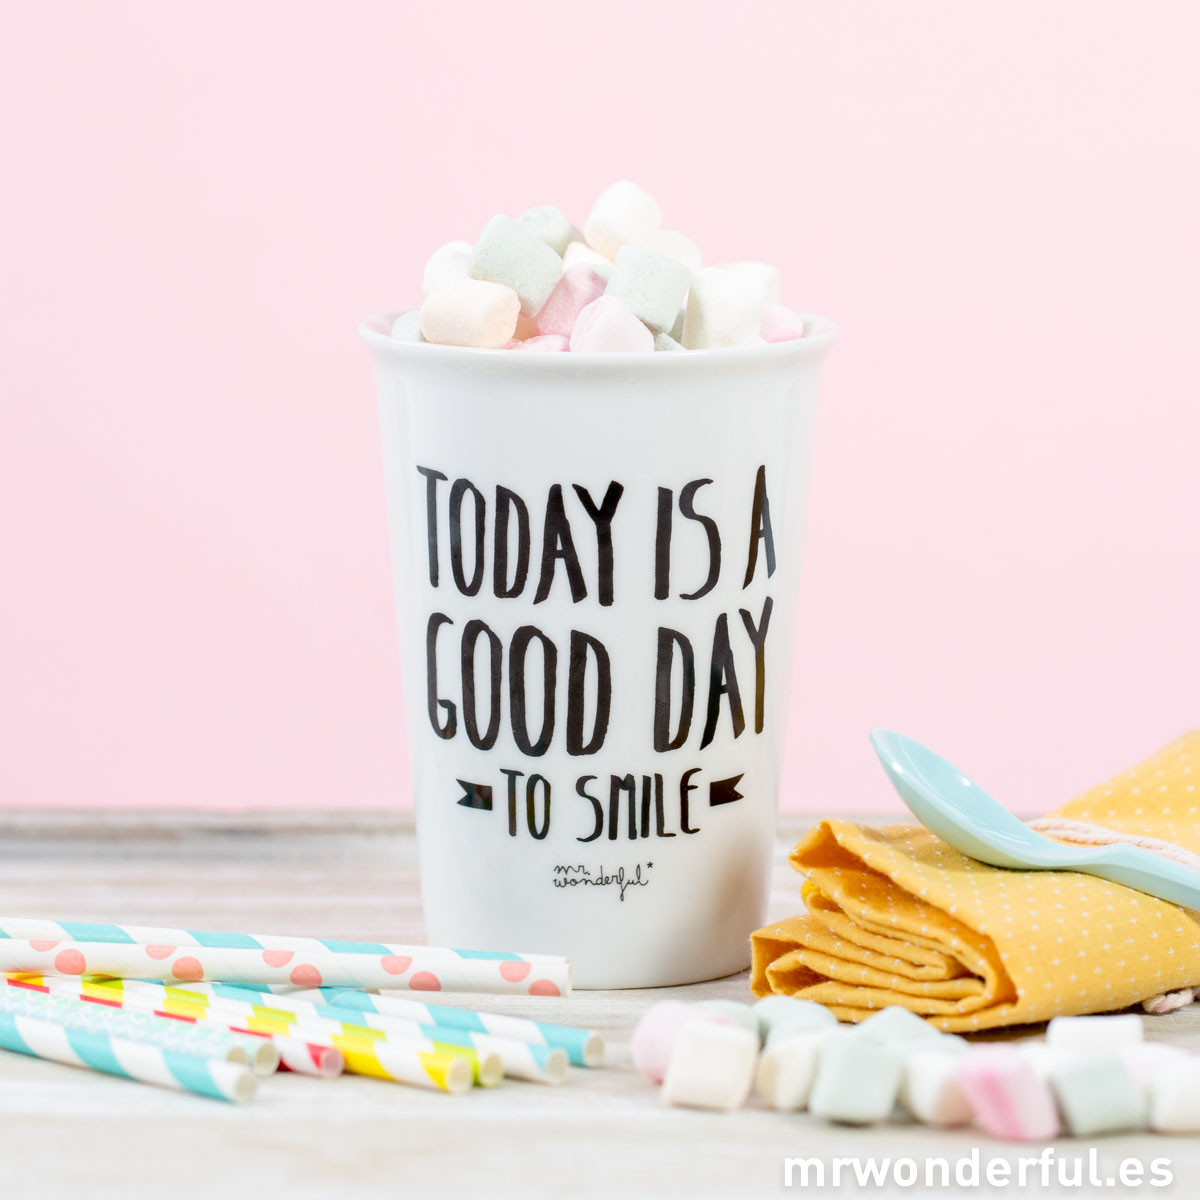 mrwonderful_843654719057_WON-174_today-is-a-good-day-to-smile_taza-take-away-10